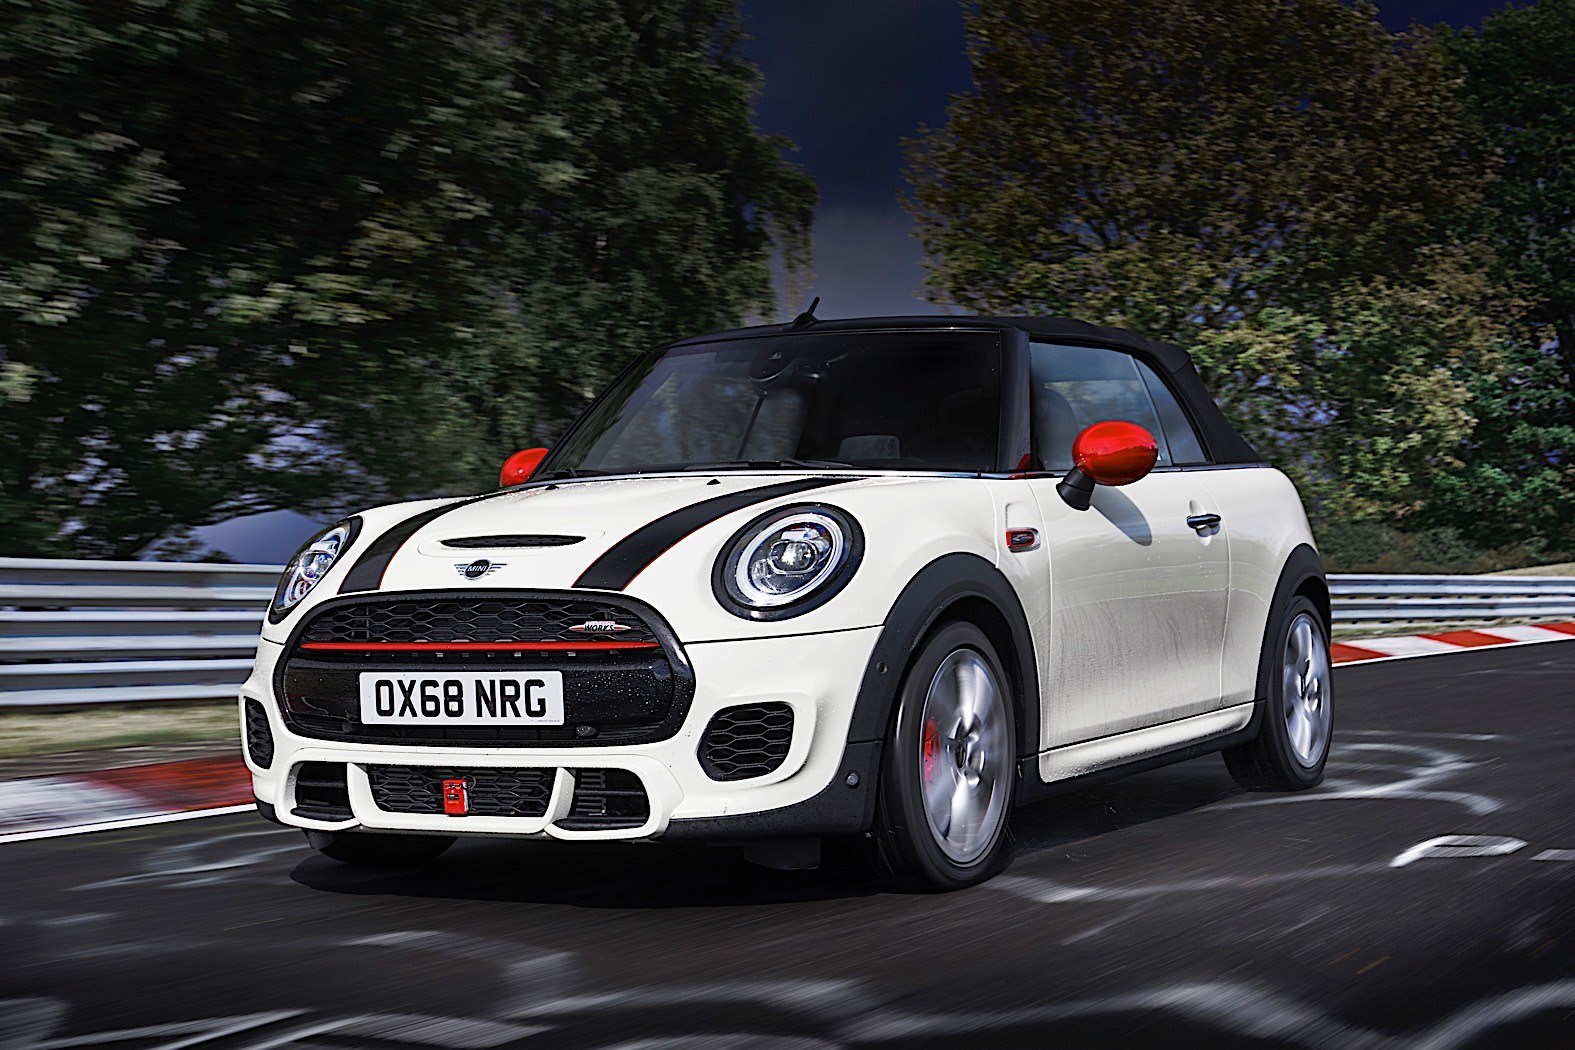 mini john cooper works comes back as euro 6d temp compliant car from march 2019 autoevolution. Black Bedroom Furniture Sets. Home Design Ideas